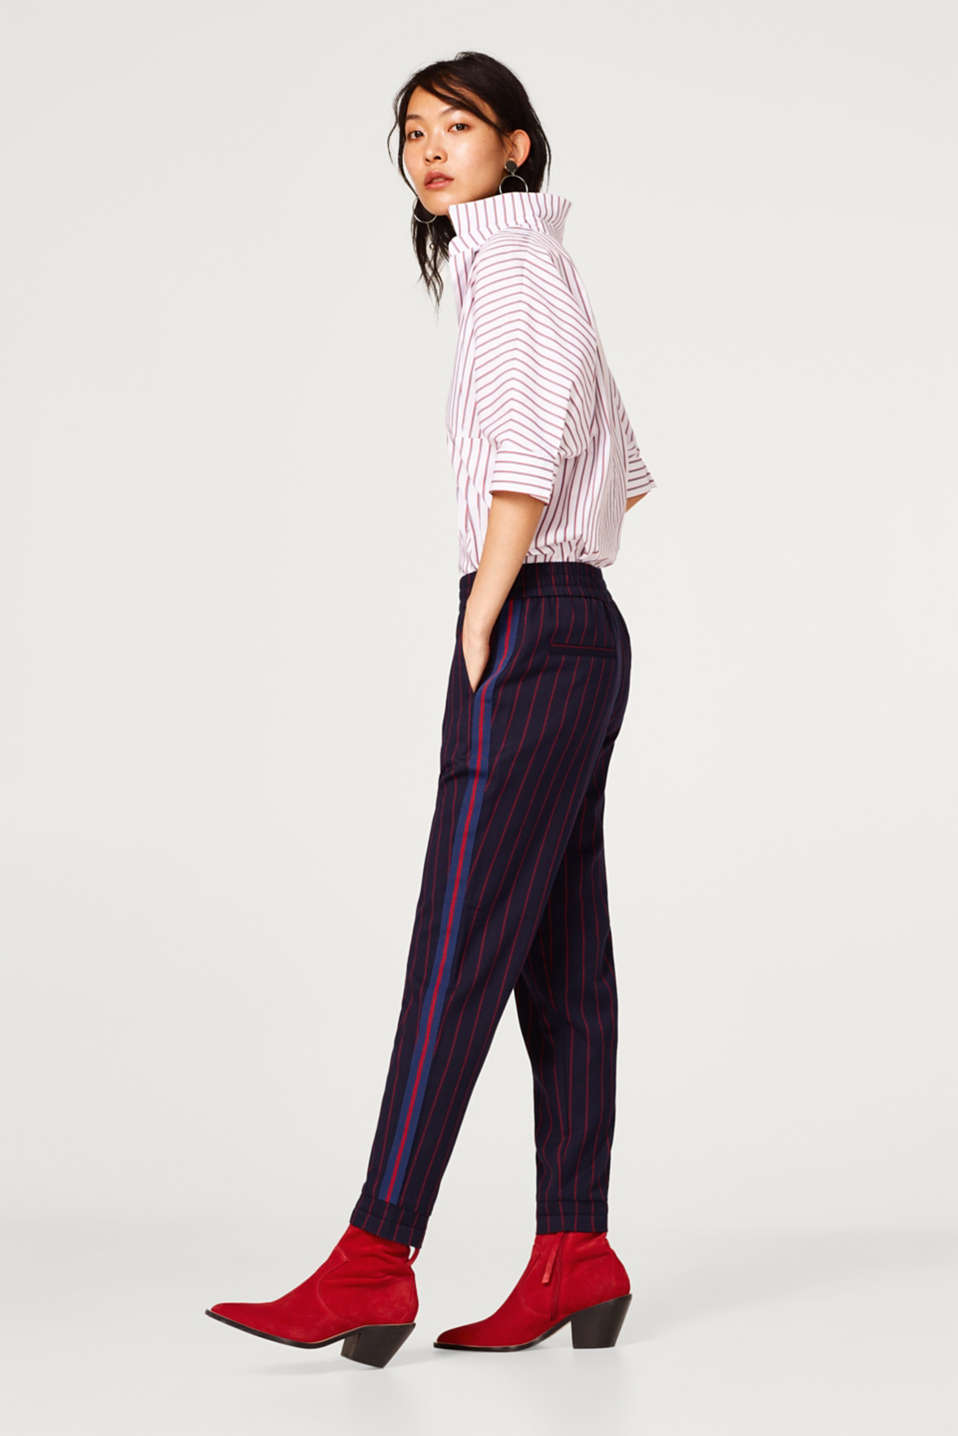 Esprit - Stretch trousers in a tracksuit bottoms style with stripes